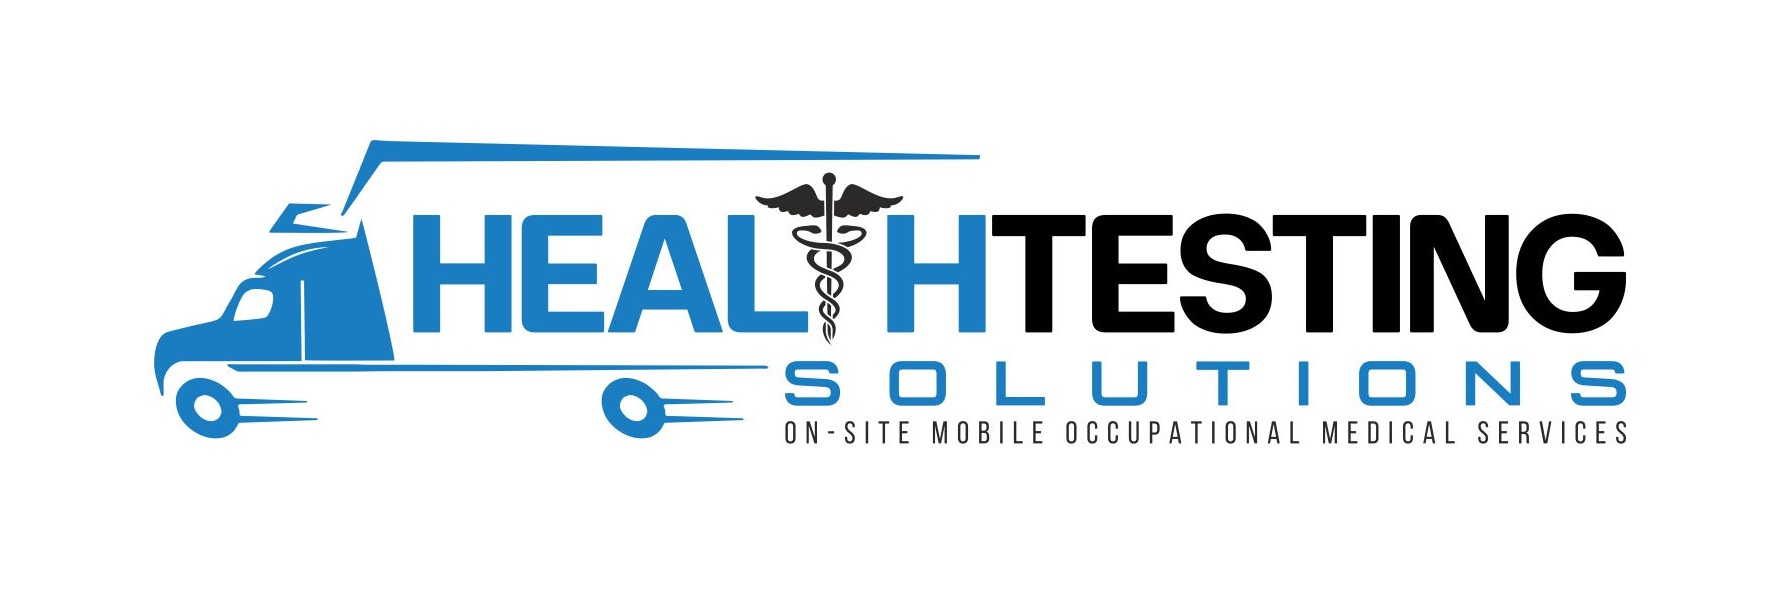 Health Testing Solutions Houston